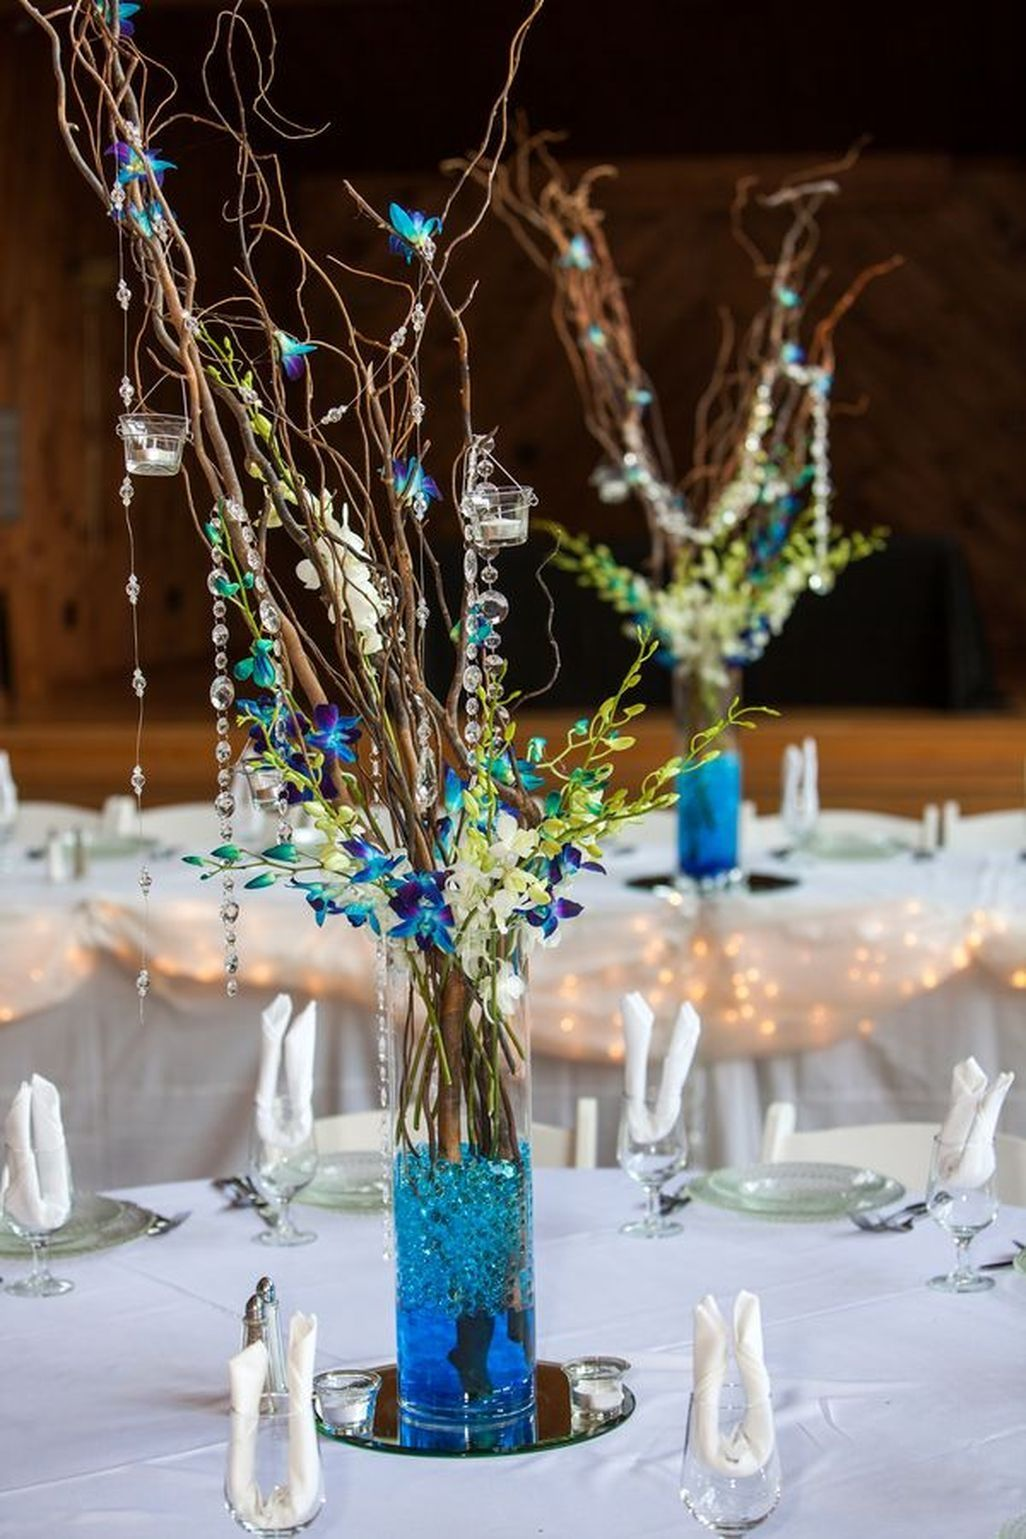 Pin By Rhonda On Daughter S Wedding Peacock Wedding Centerpieces